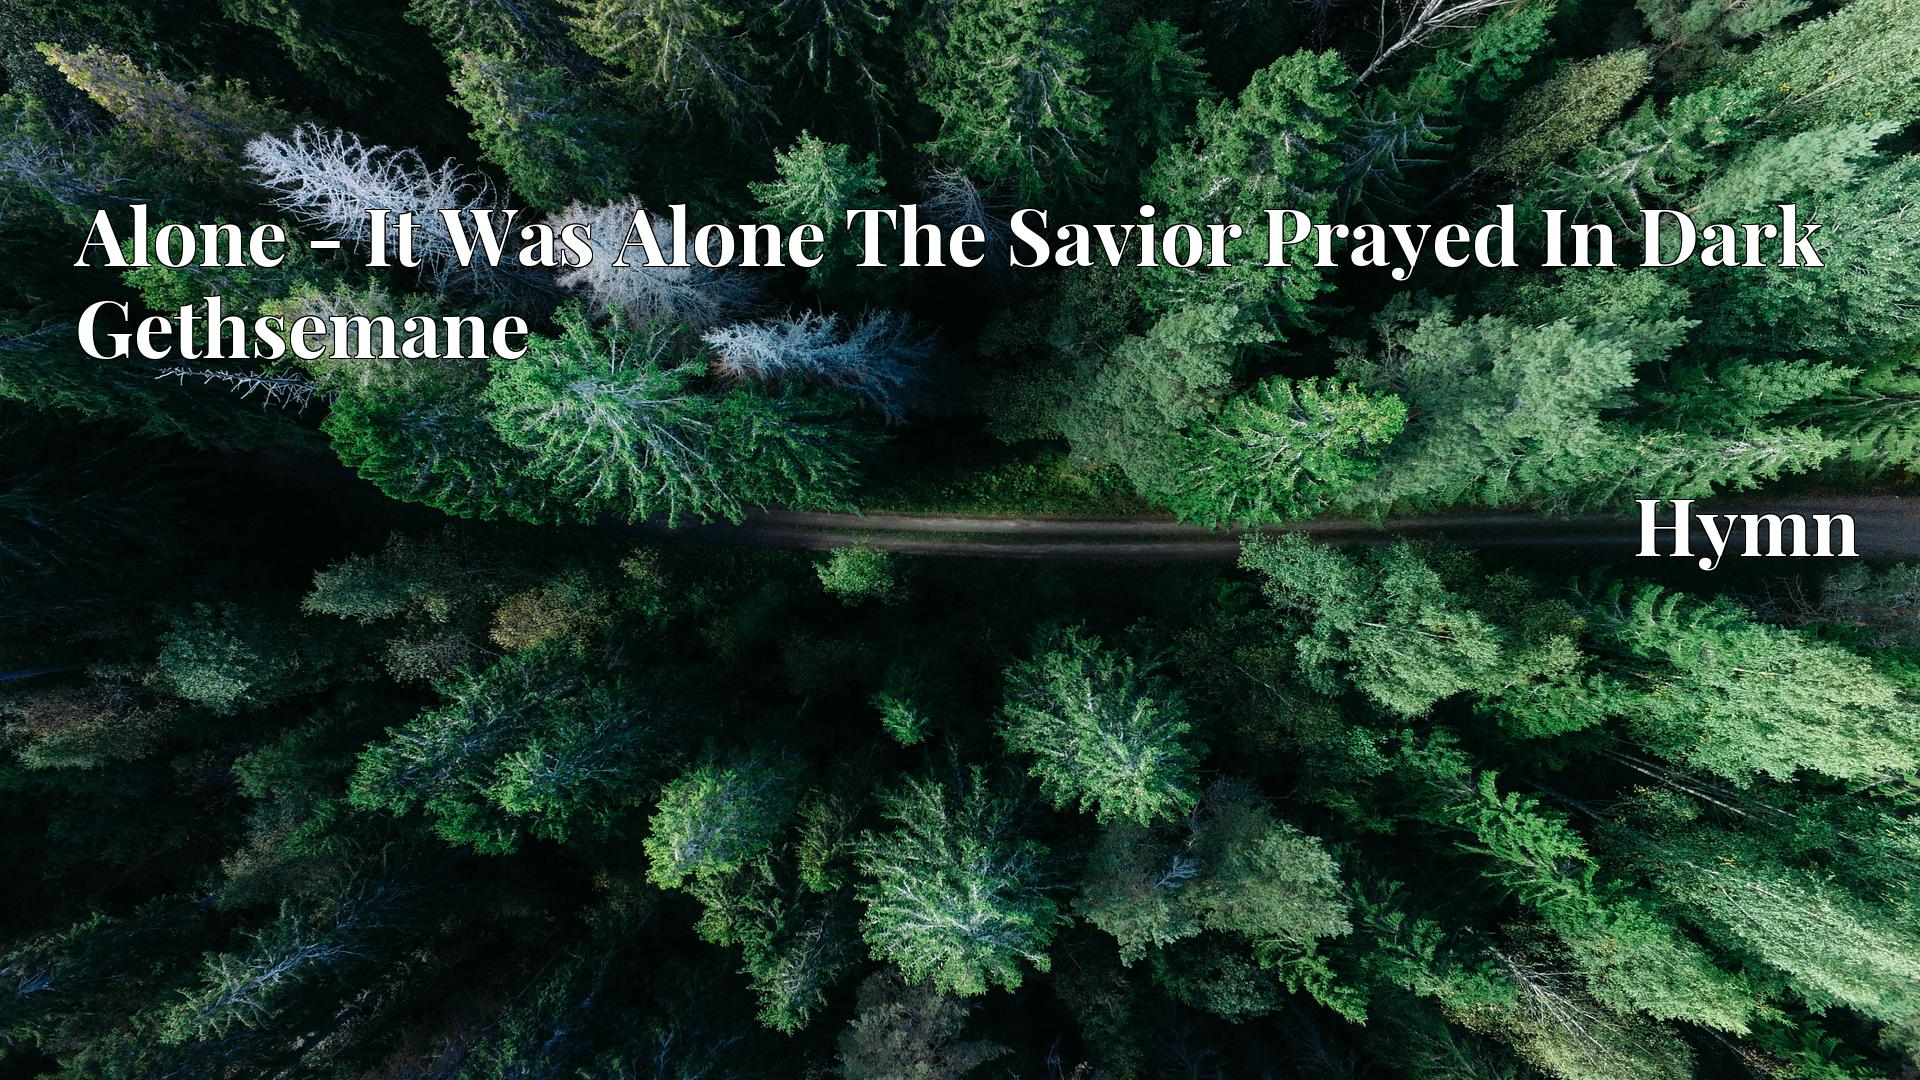 Alone - It Was Alone The Savior Prayed In Dark Gethsemane - Hymn